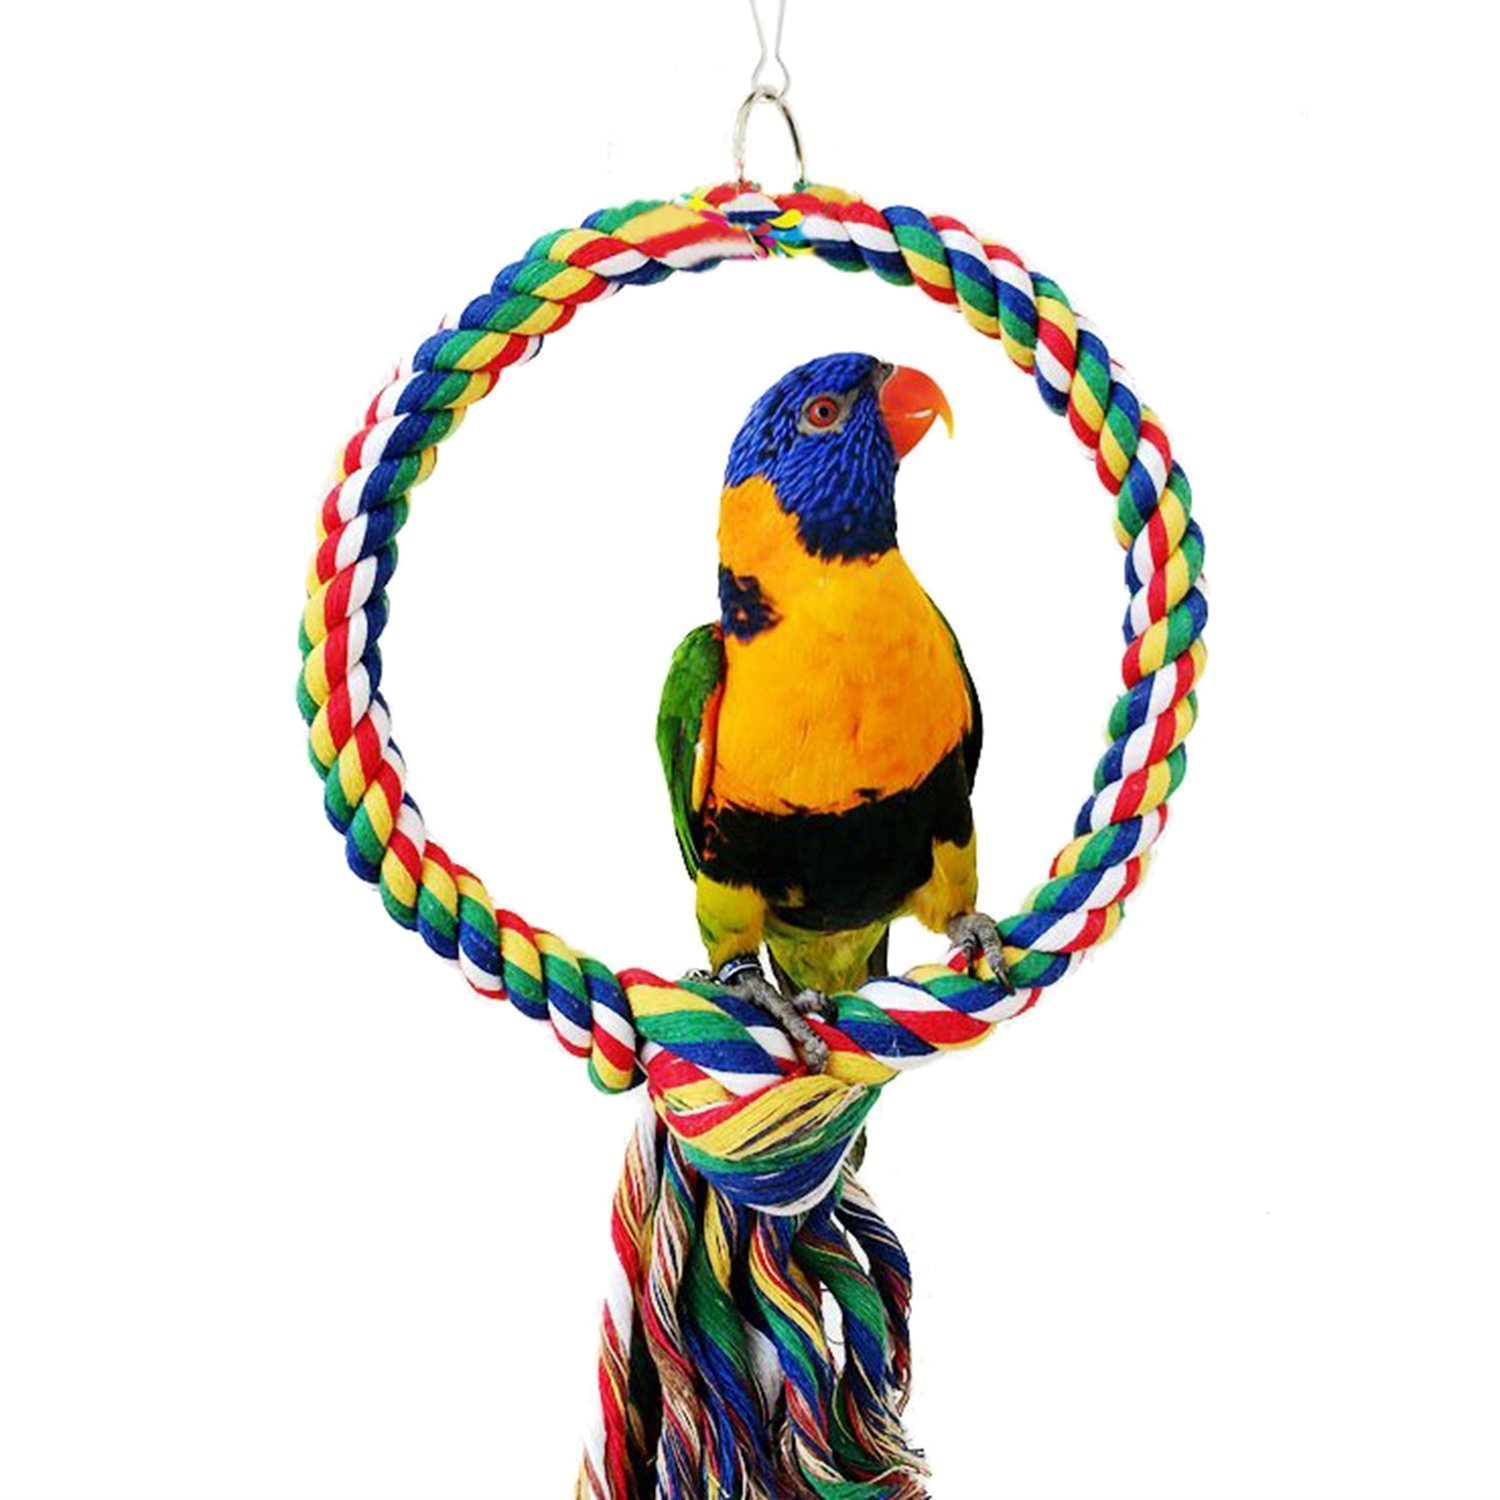 RYPET Bird Swing - Wooden Conure Toys Bird Cage Hammock Swing Hanging Toy for Small Parakeets Cockatiels, Conures, Macaws, Parrots, Love Birds, Finches(2 Packs) by RYPET (Image #3)